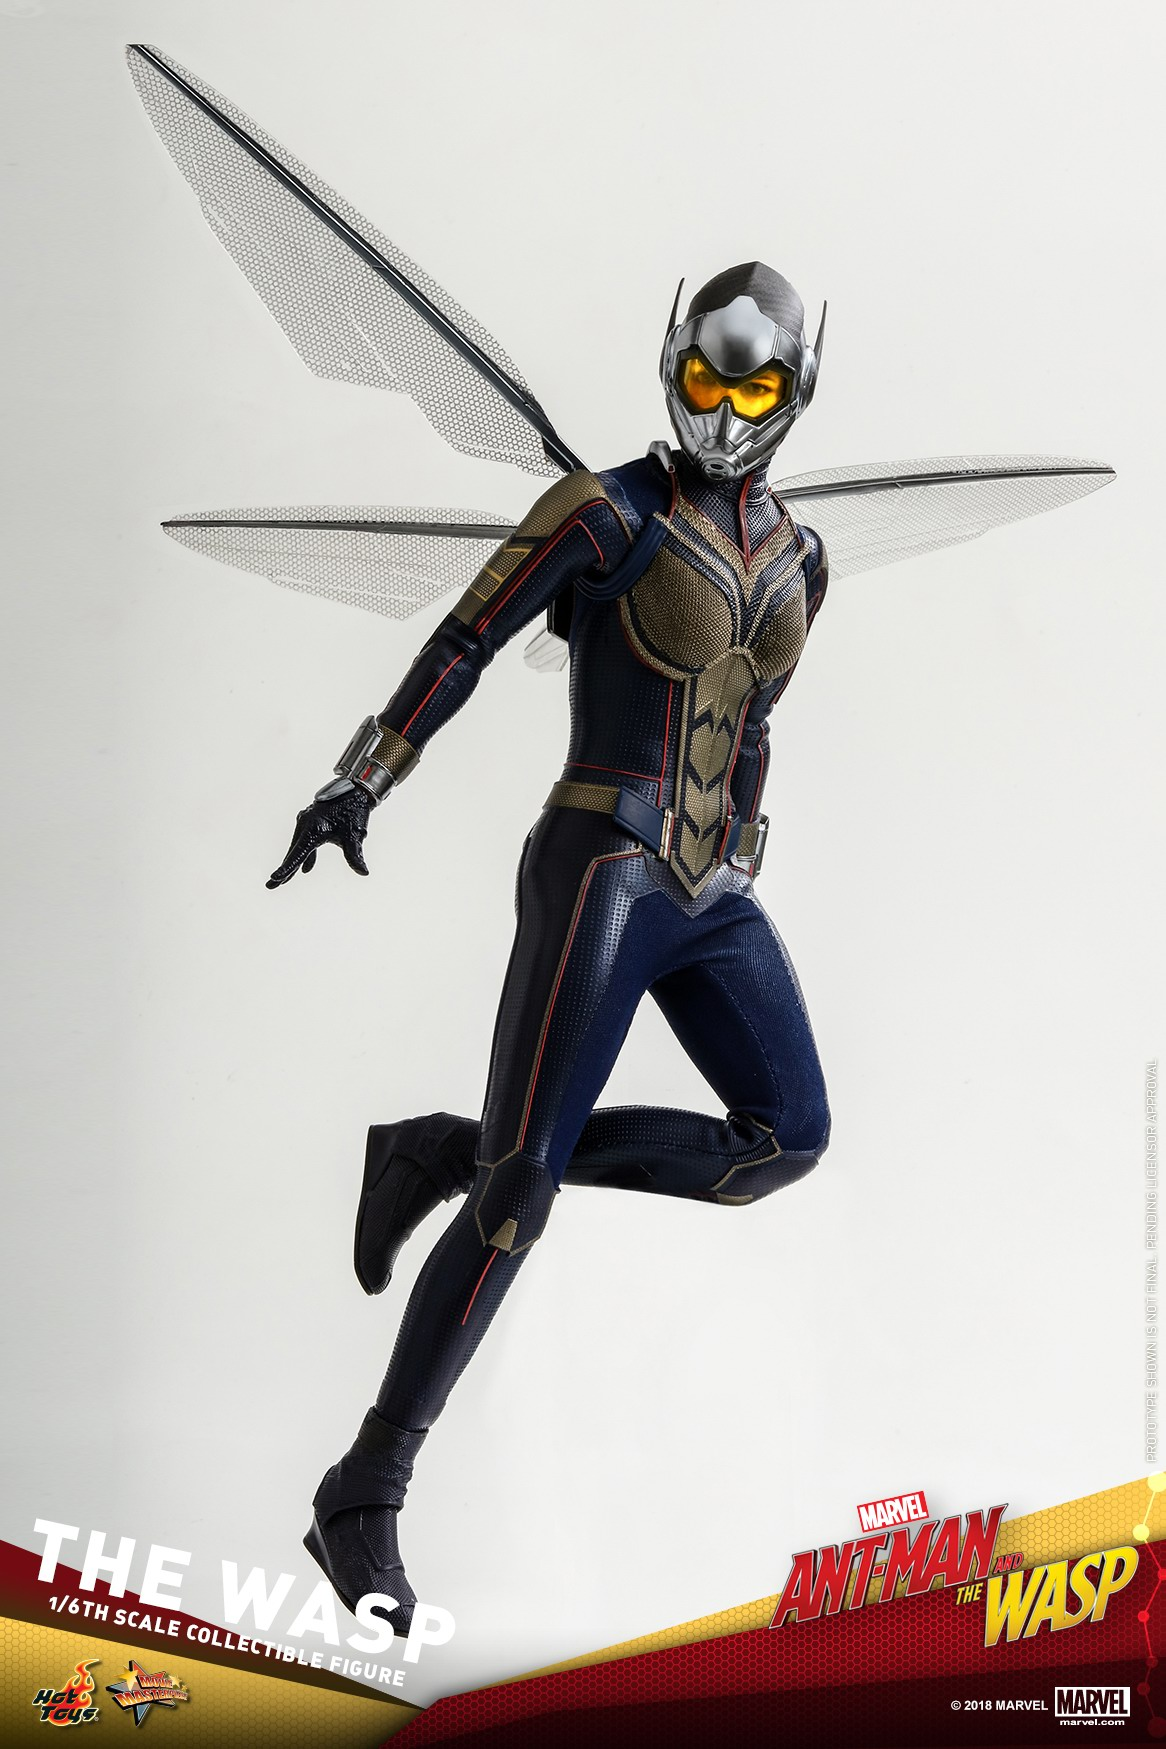 Hot-Toys-Ant-Man-and-The-Wasp-The-Wasp-Collectible-Figure_PR11.jpg